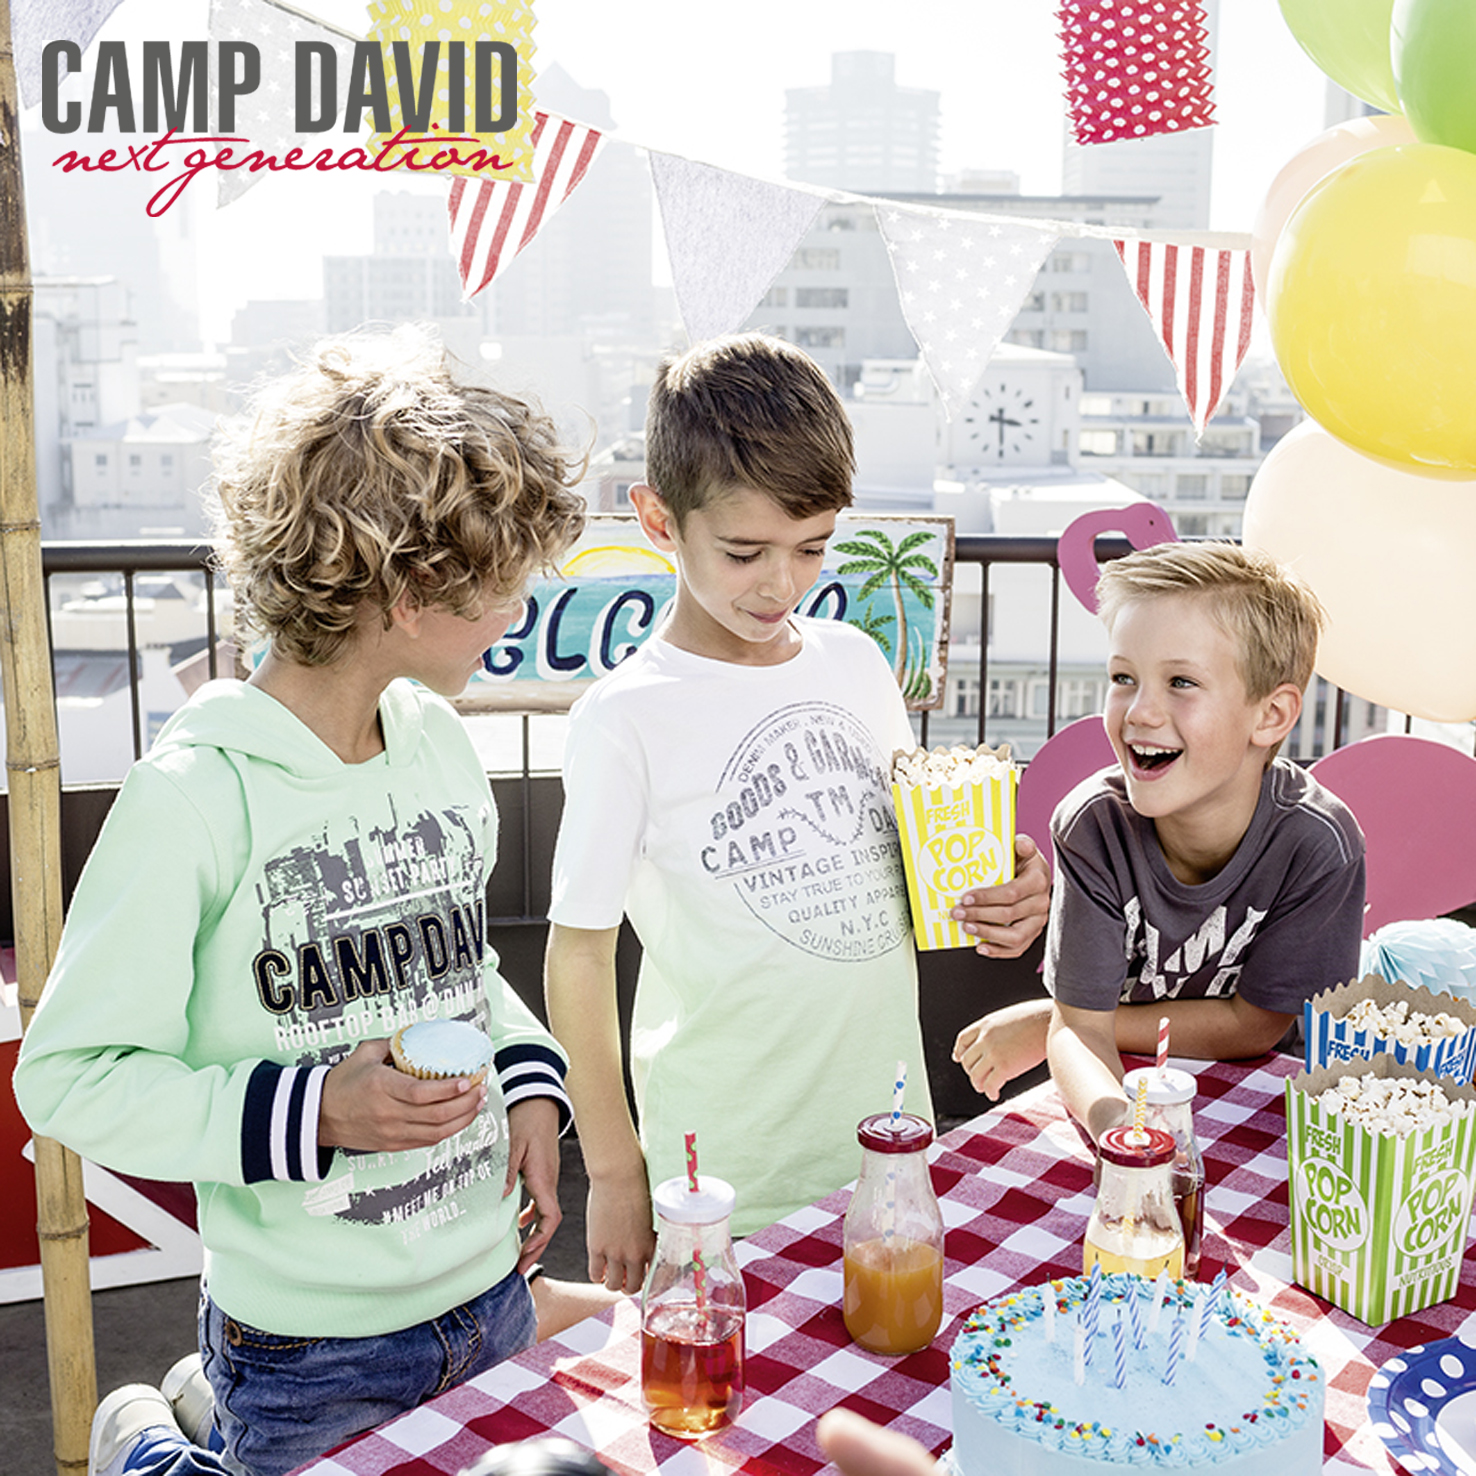 Camp David next generation